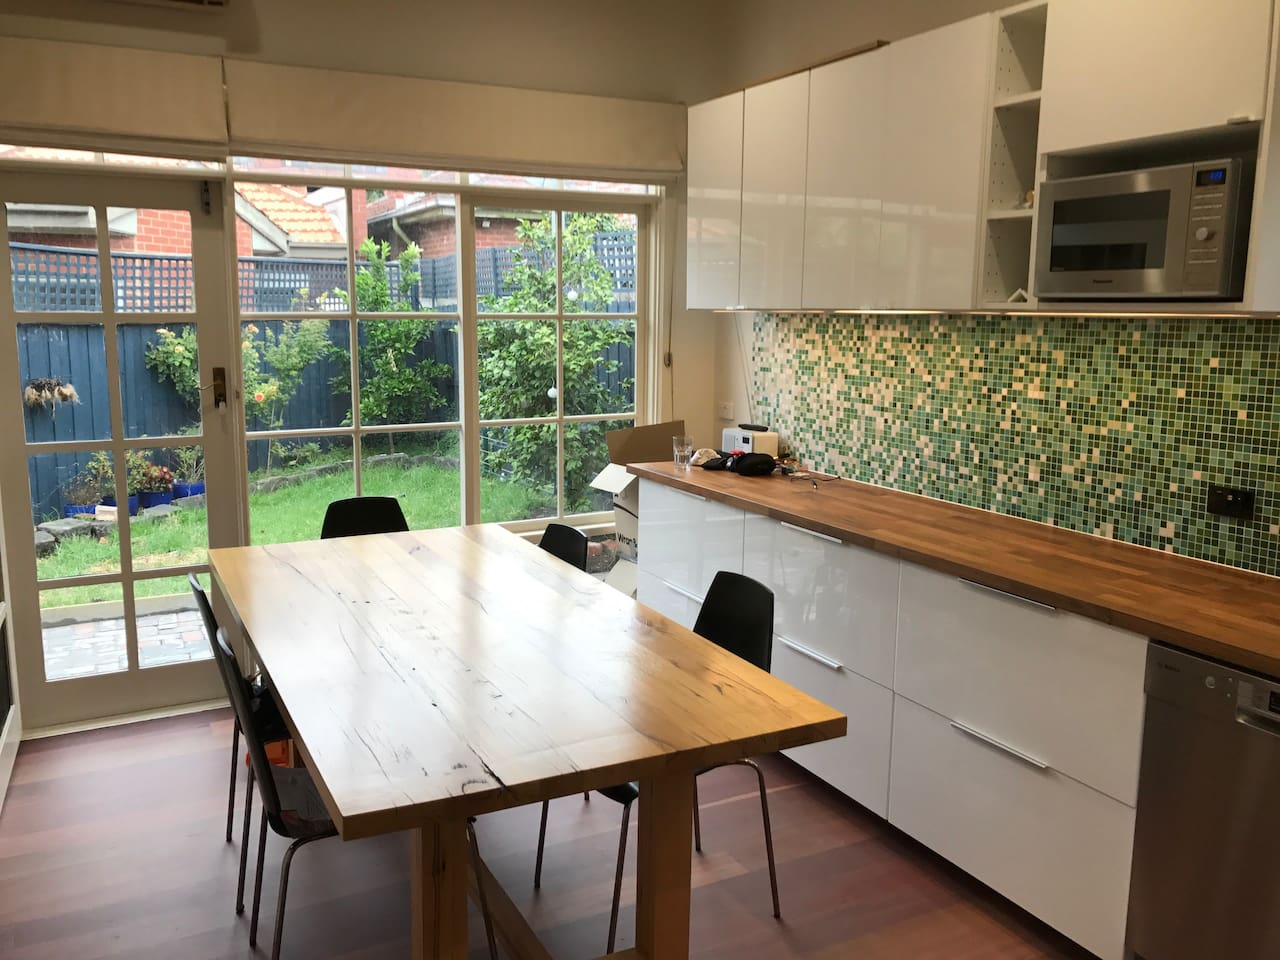 Kitchen with amazing light and access to back yard